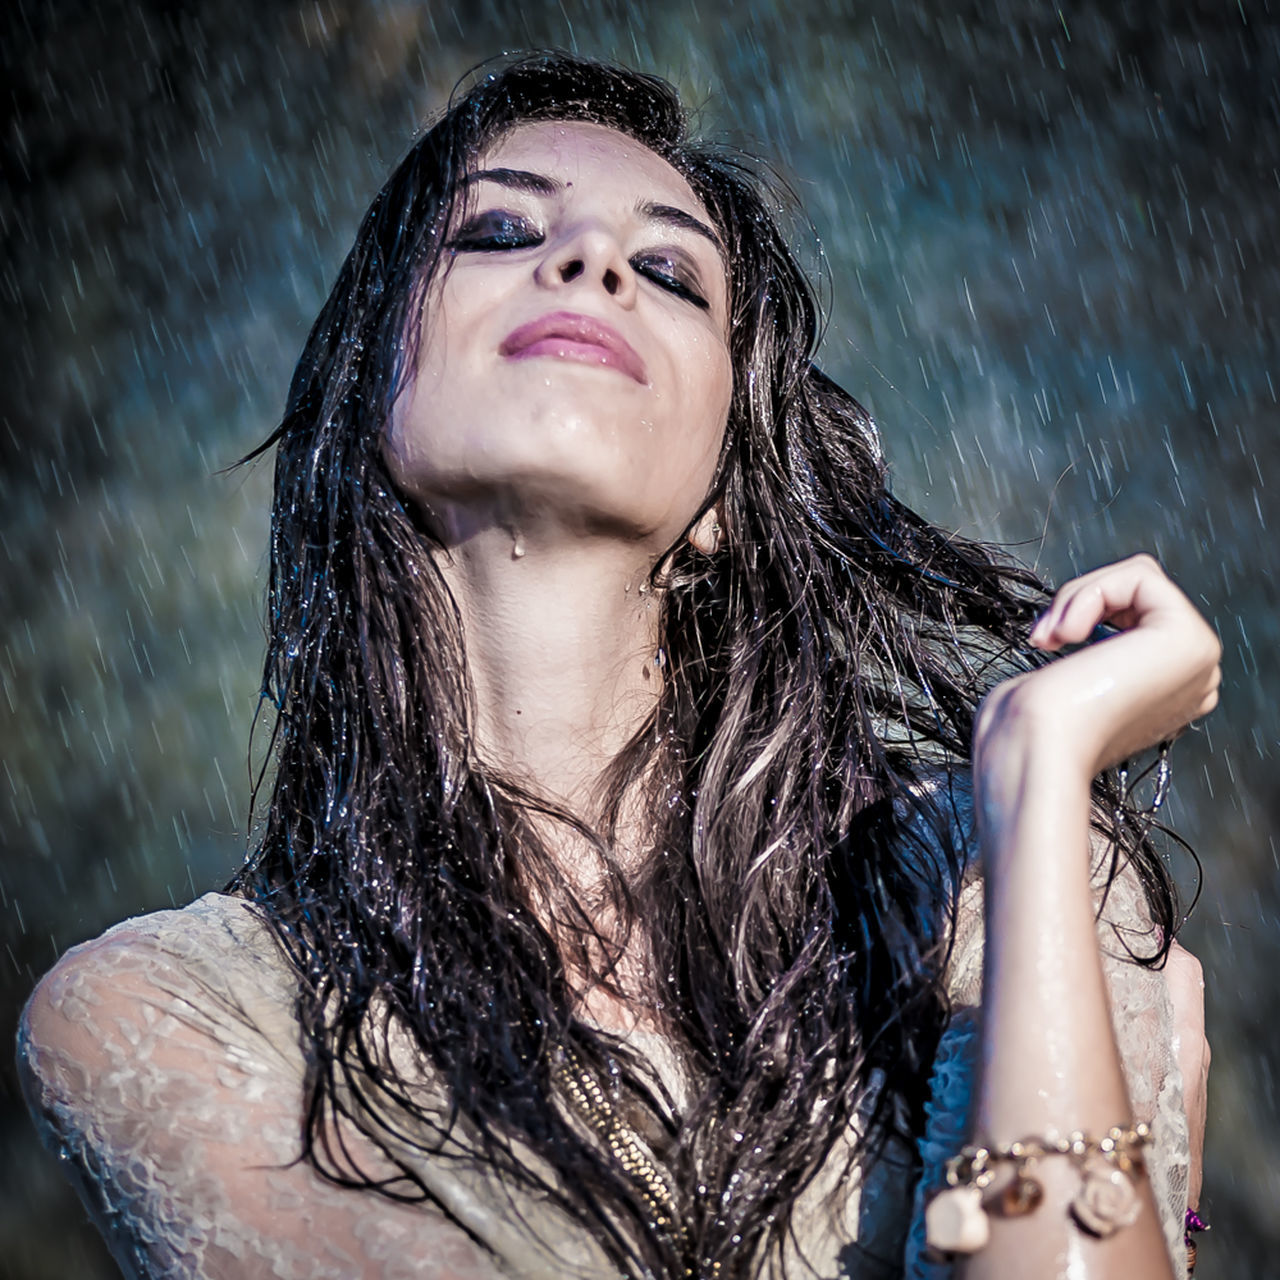 wet, rain, water, weather, drop, wet hair, raindrop, rainy season, shower, refreshment, splashing, motion, storm, outdoors, happiness, torrential rain, real people, focus on foreground, lifestyles, leisure activity, nature, young women, one person, cold temperature, day, young adult, spraying, beautiful woman, close-up, dripping, people